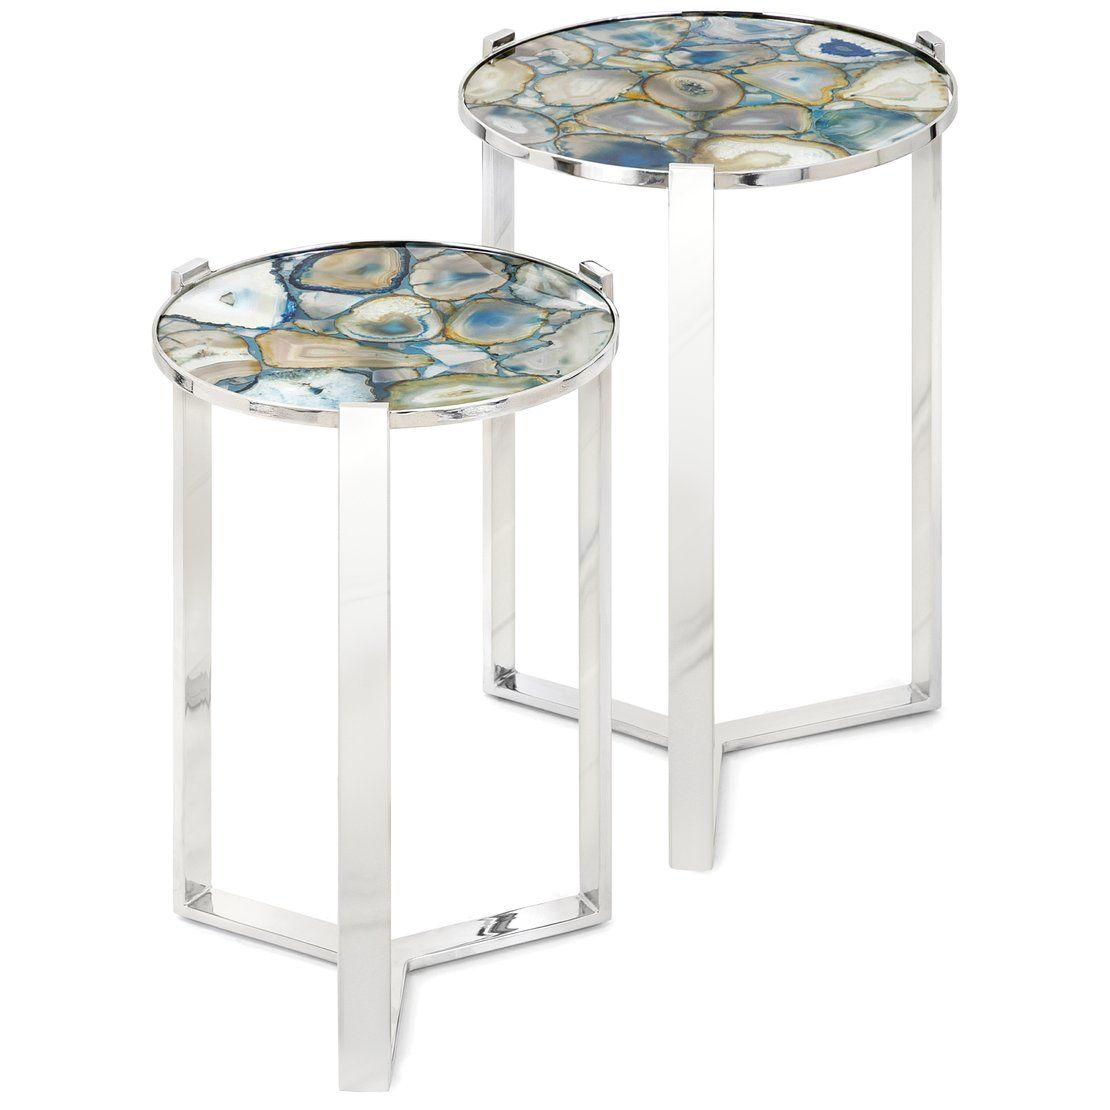 nakasa agate blue stone piece nesting tables jen table glass accent parsons end designer and chairs gold wood coffee tall corner sofa square clear metal bedroom side silver